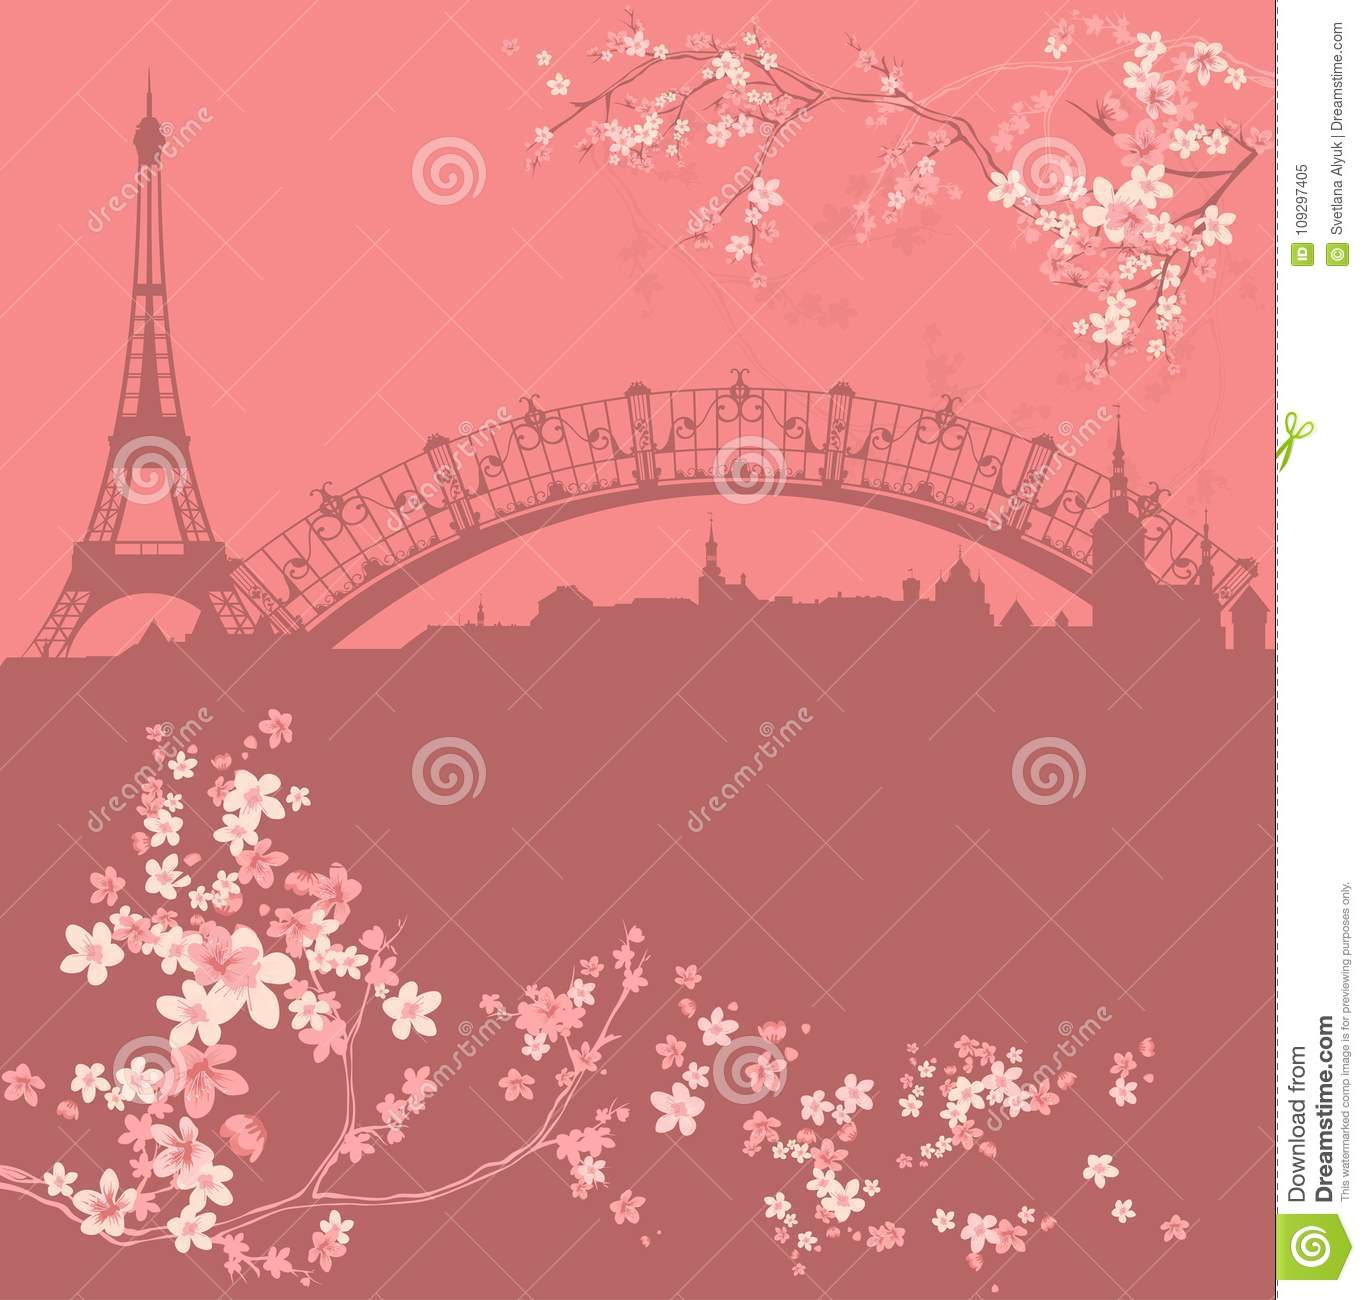 Spring Paris City Among Blooming Flowers Vector Stock Vector ...